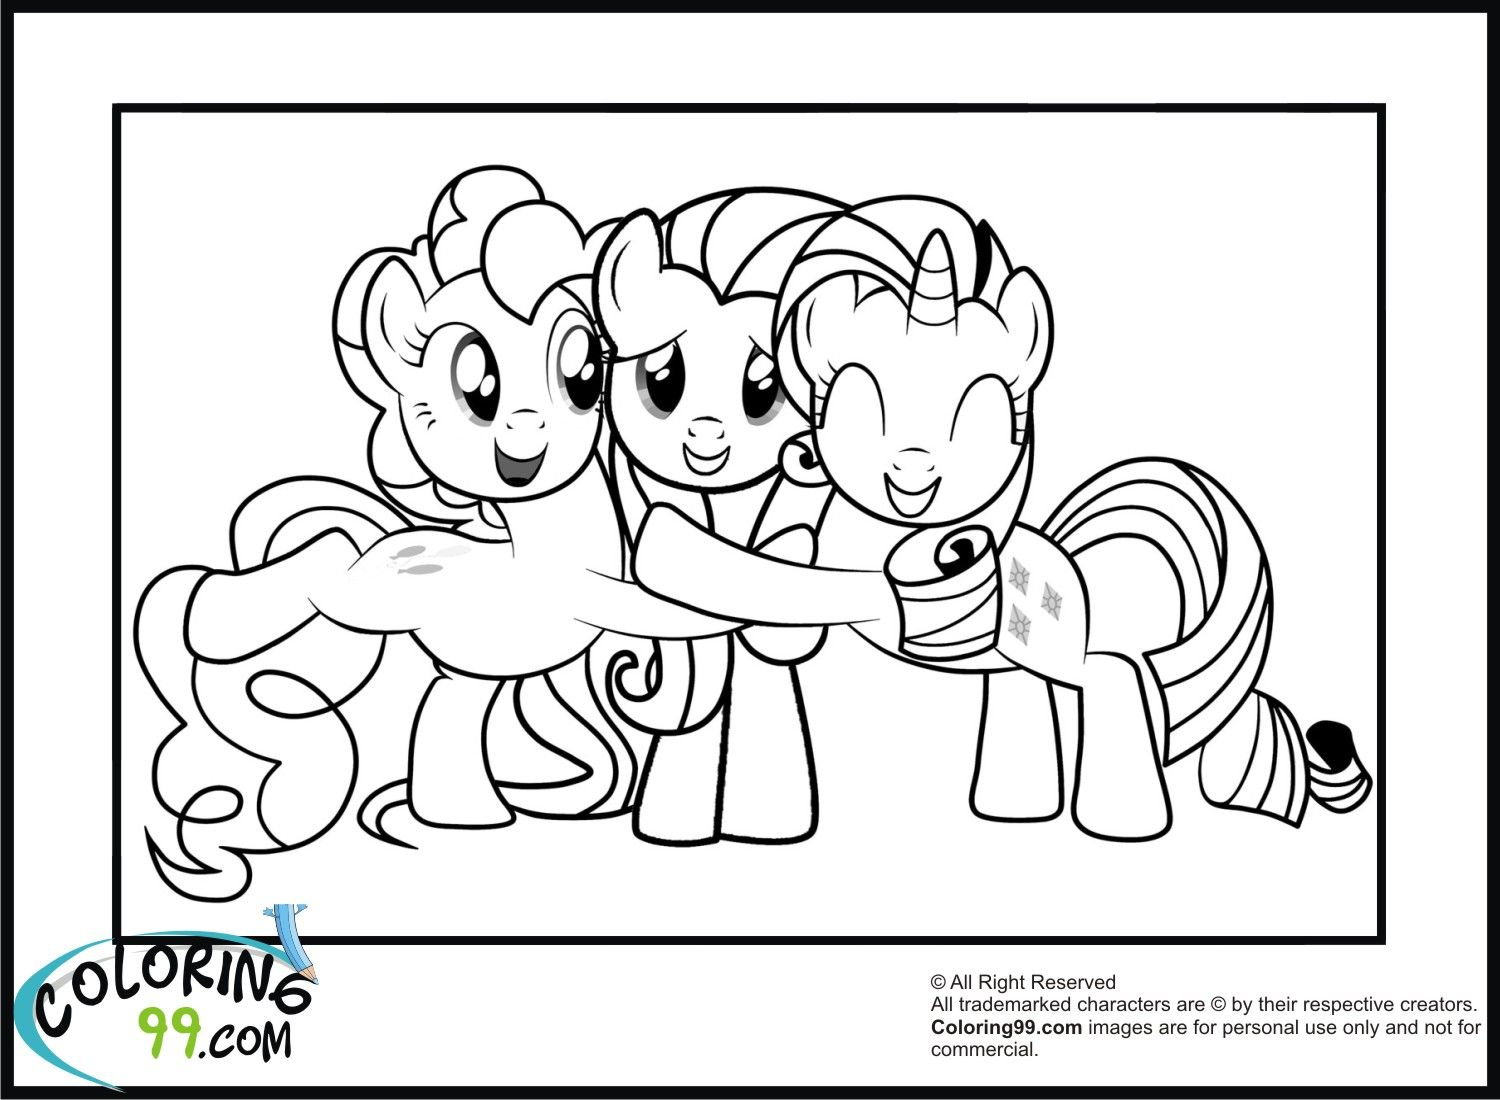 Rarity Fluttershy And Pinkie Pie Coloring Pages Jpg 1500 1100